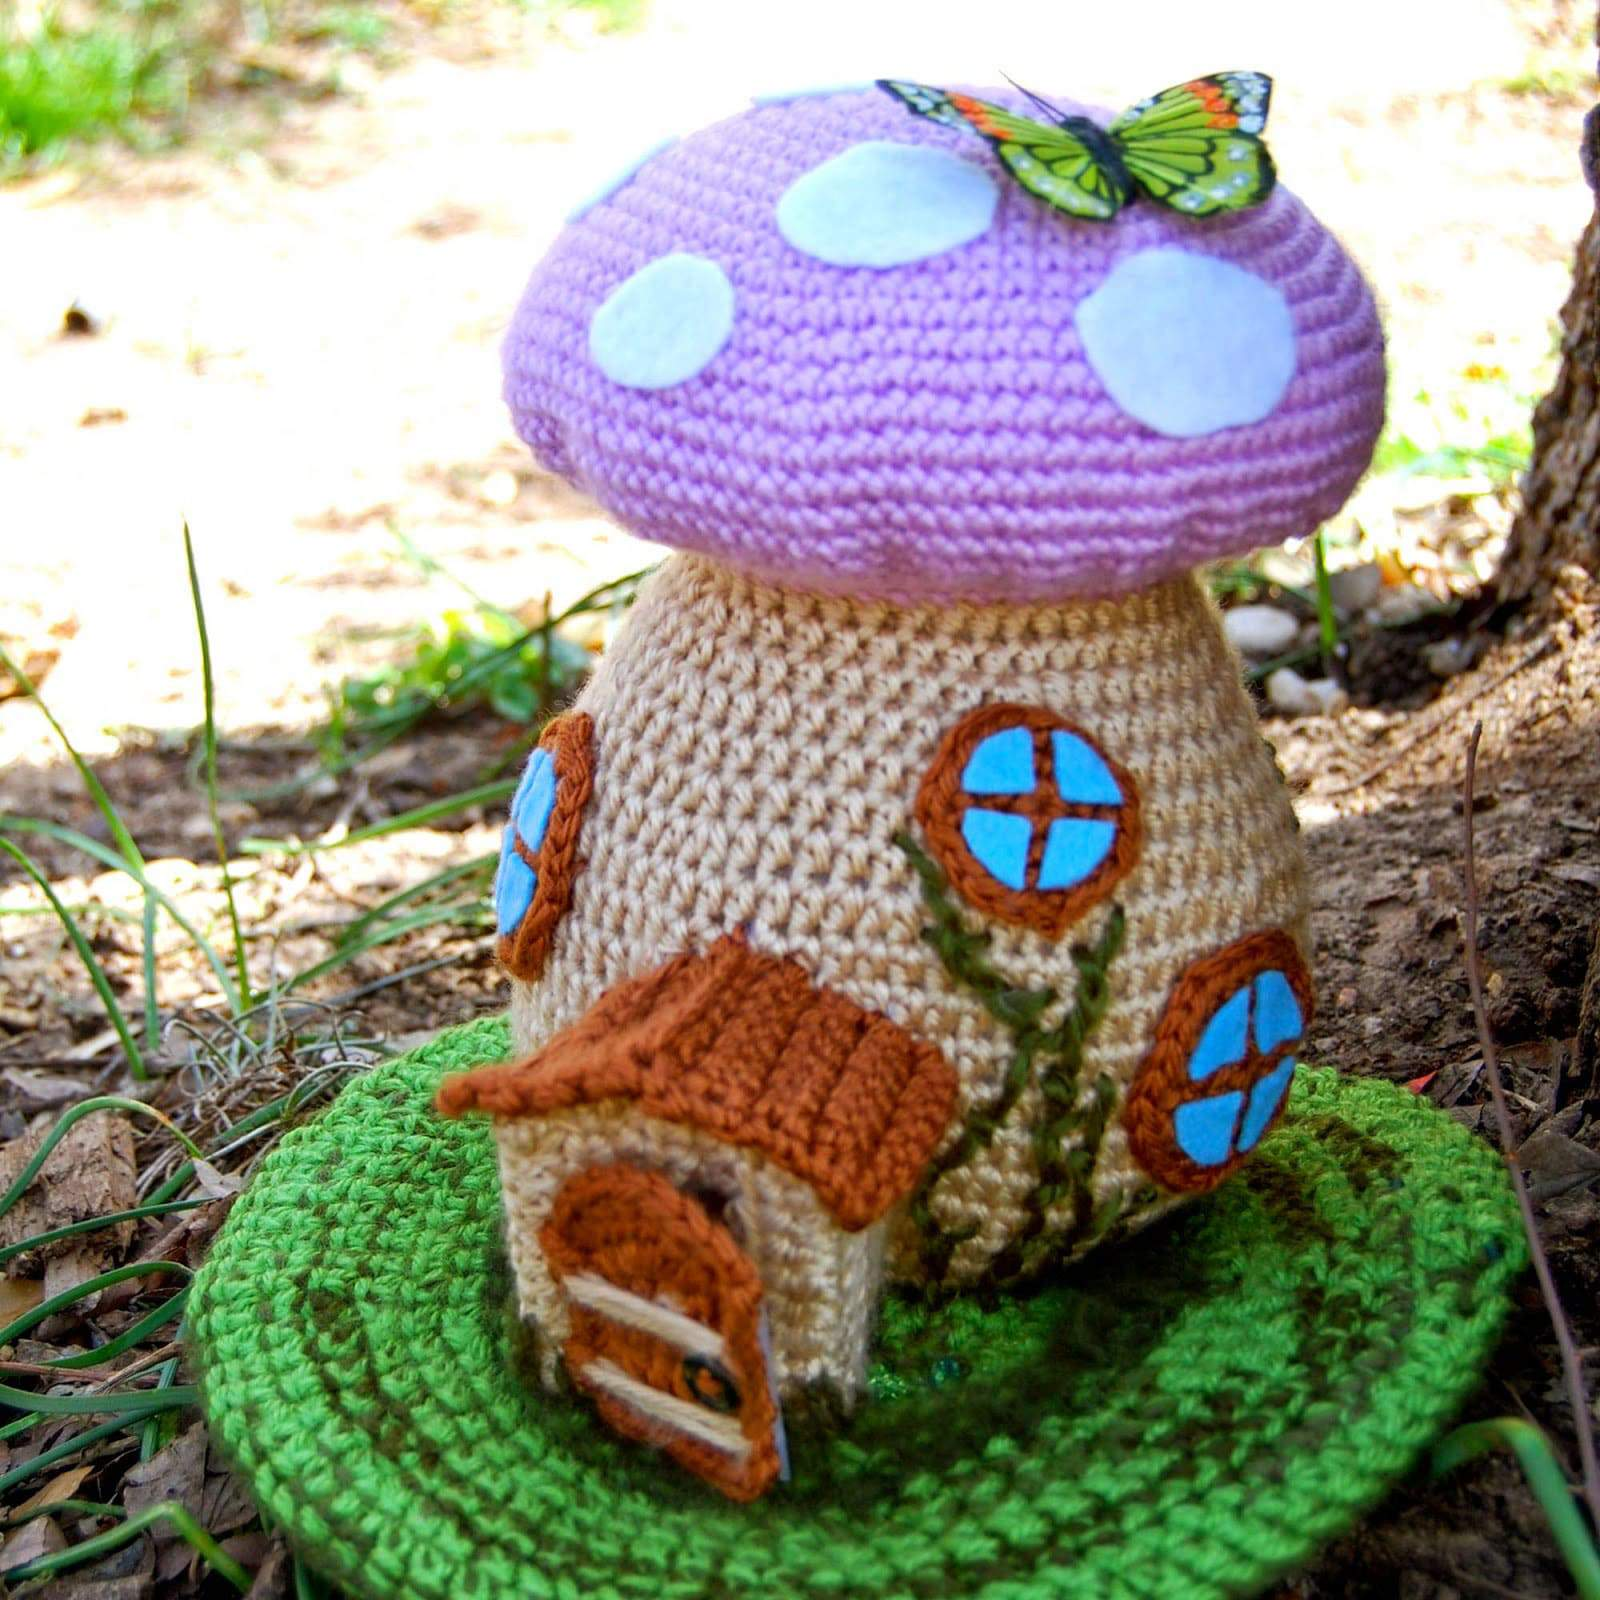 Fairy Toadstool House Crochet Pattern Free